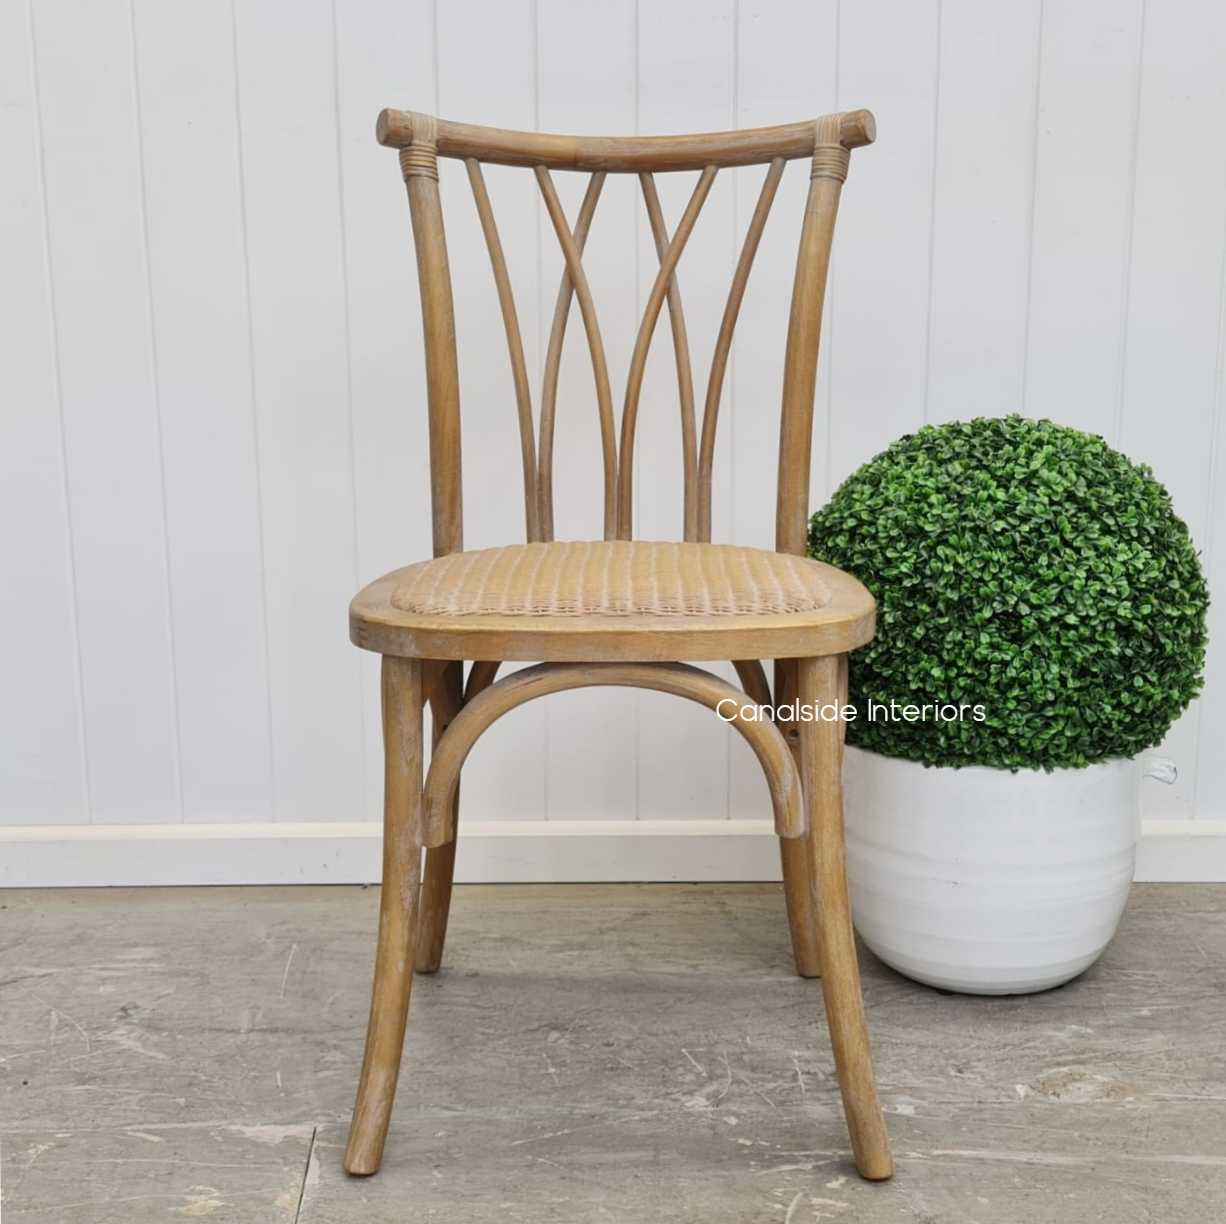 Botanica Chair Oatmeal Dining, CHAIRS, CAFE FURNITURE, HAMPTONS Style, PLANTATION Style, CHAIRS Dining, CAFE FURNITURE Stools & Chairs, PLANTATION STYLE